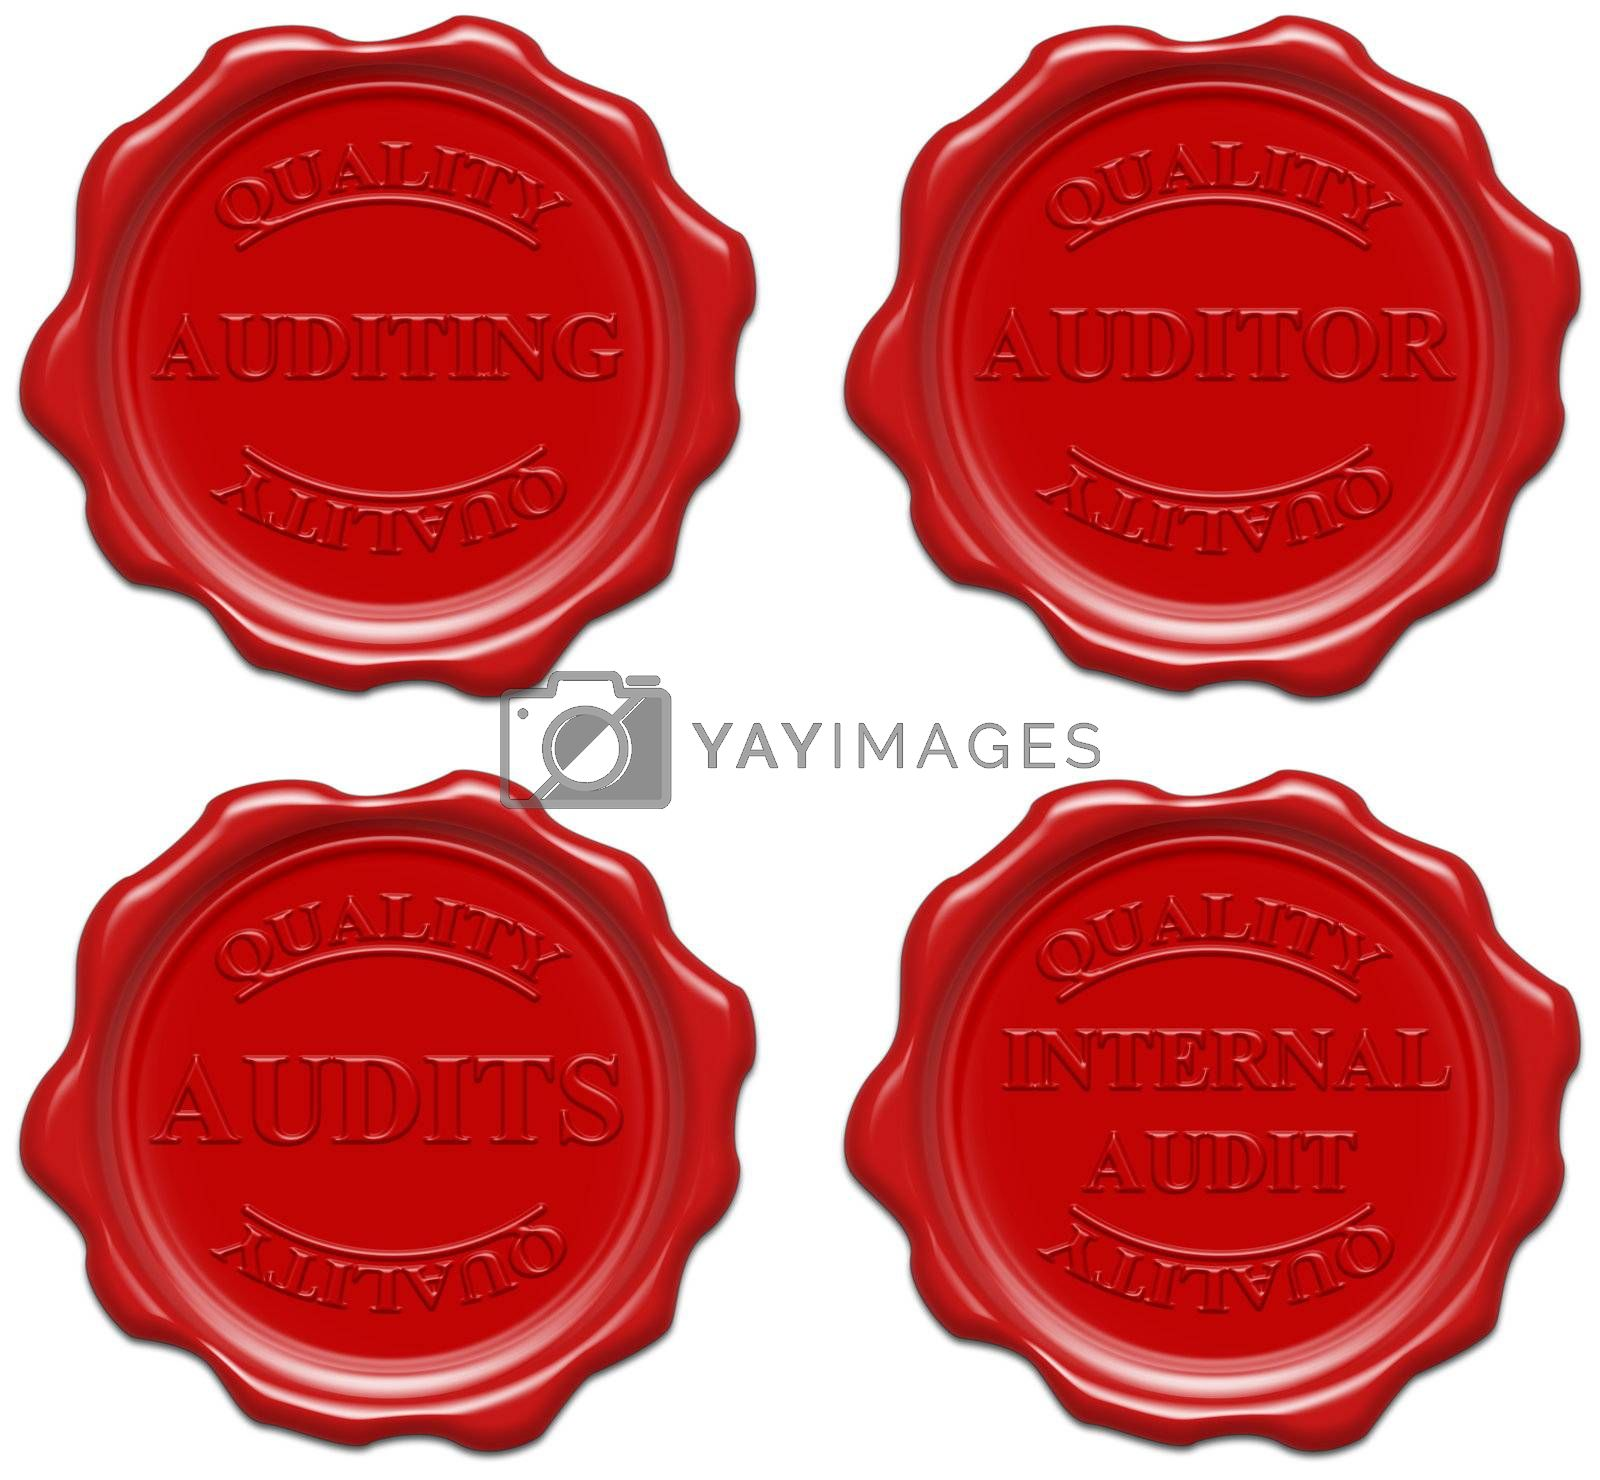 High resolution realistic red wax seal with text : quality, auditing, auditor, audits, internal audit